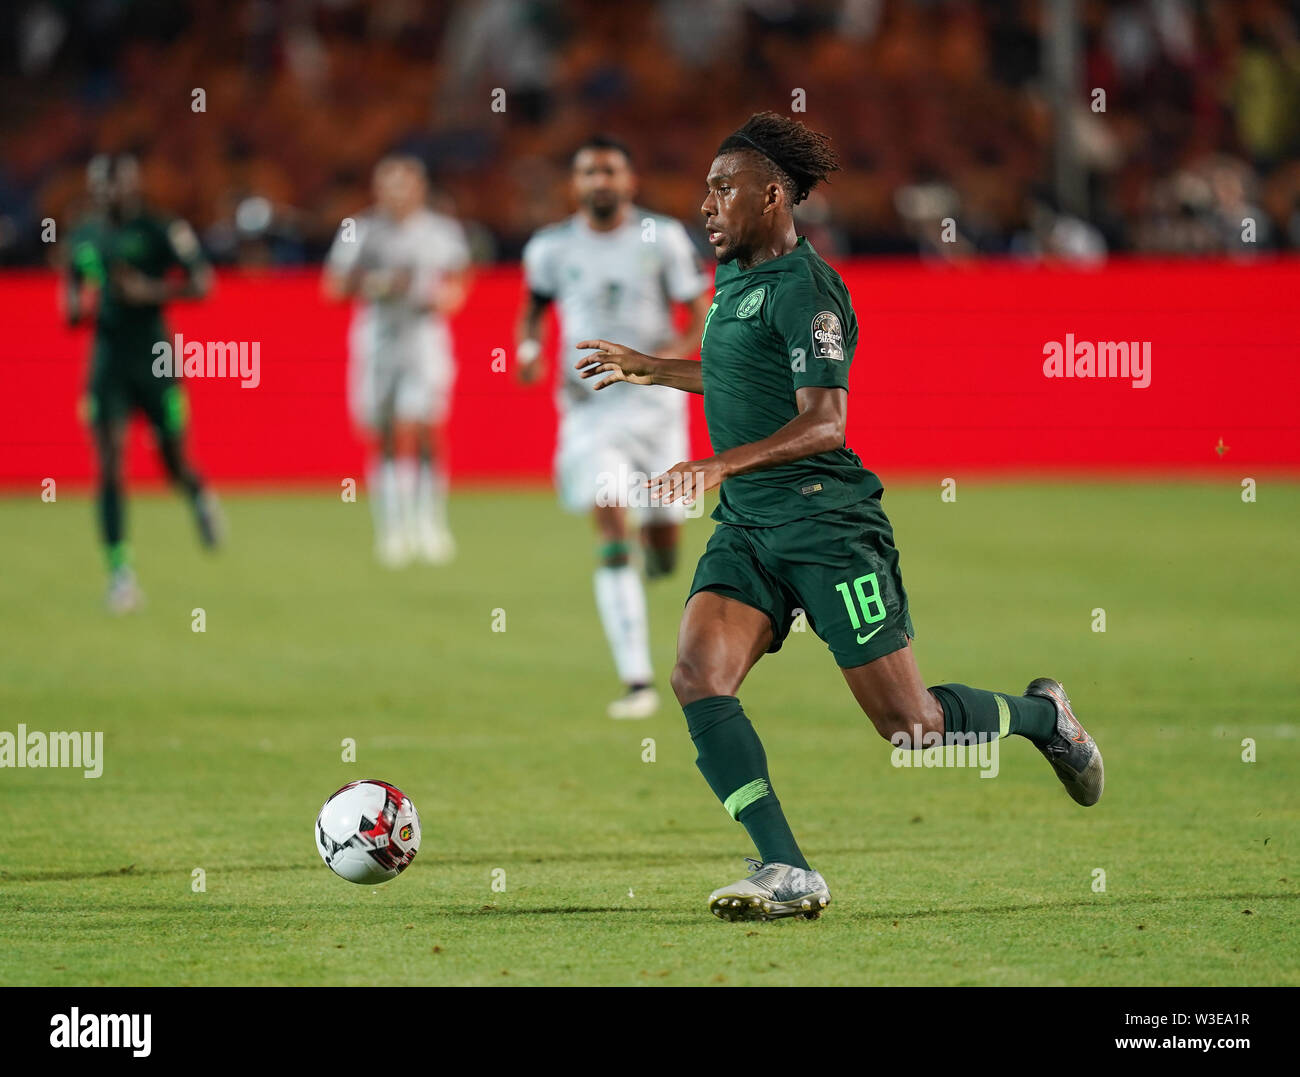 July 14, 2019 - Cairo, Algeria, Egypt - FRANCE OUT July 14, 2019: Alexander Chuka Iwobi of Nigeria during the 2019 African Cup of Nations match between Algeria and Nigeria at the Cairo International Stadium in Cairo, Egypt. Ulrik Pedersen/CSM. - Stock Image